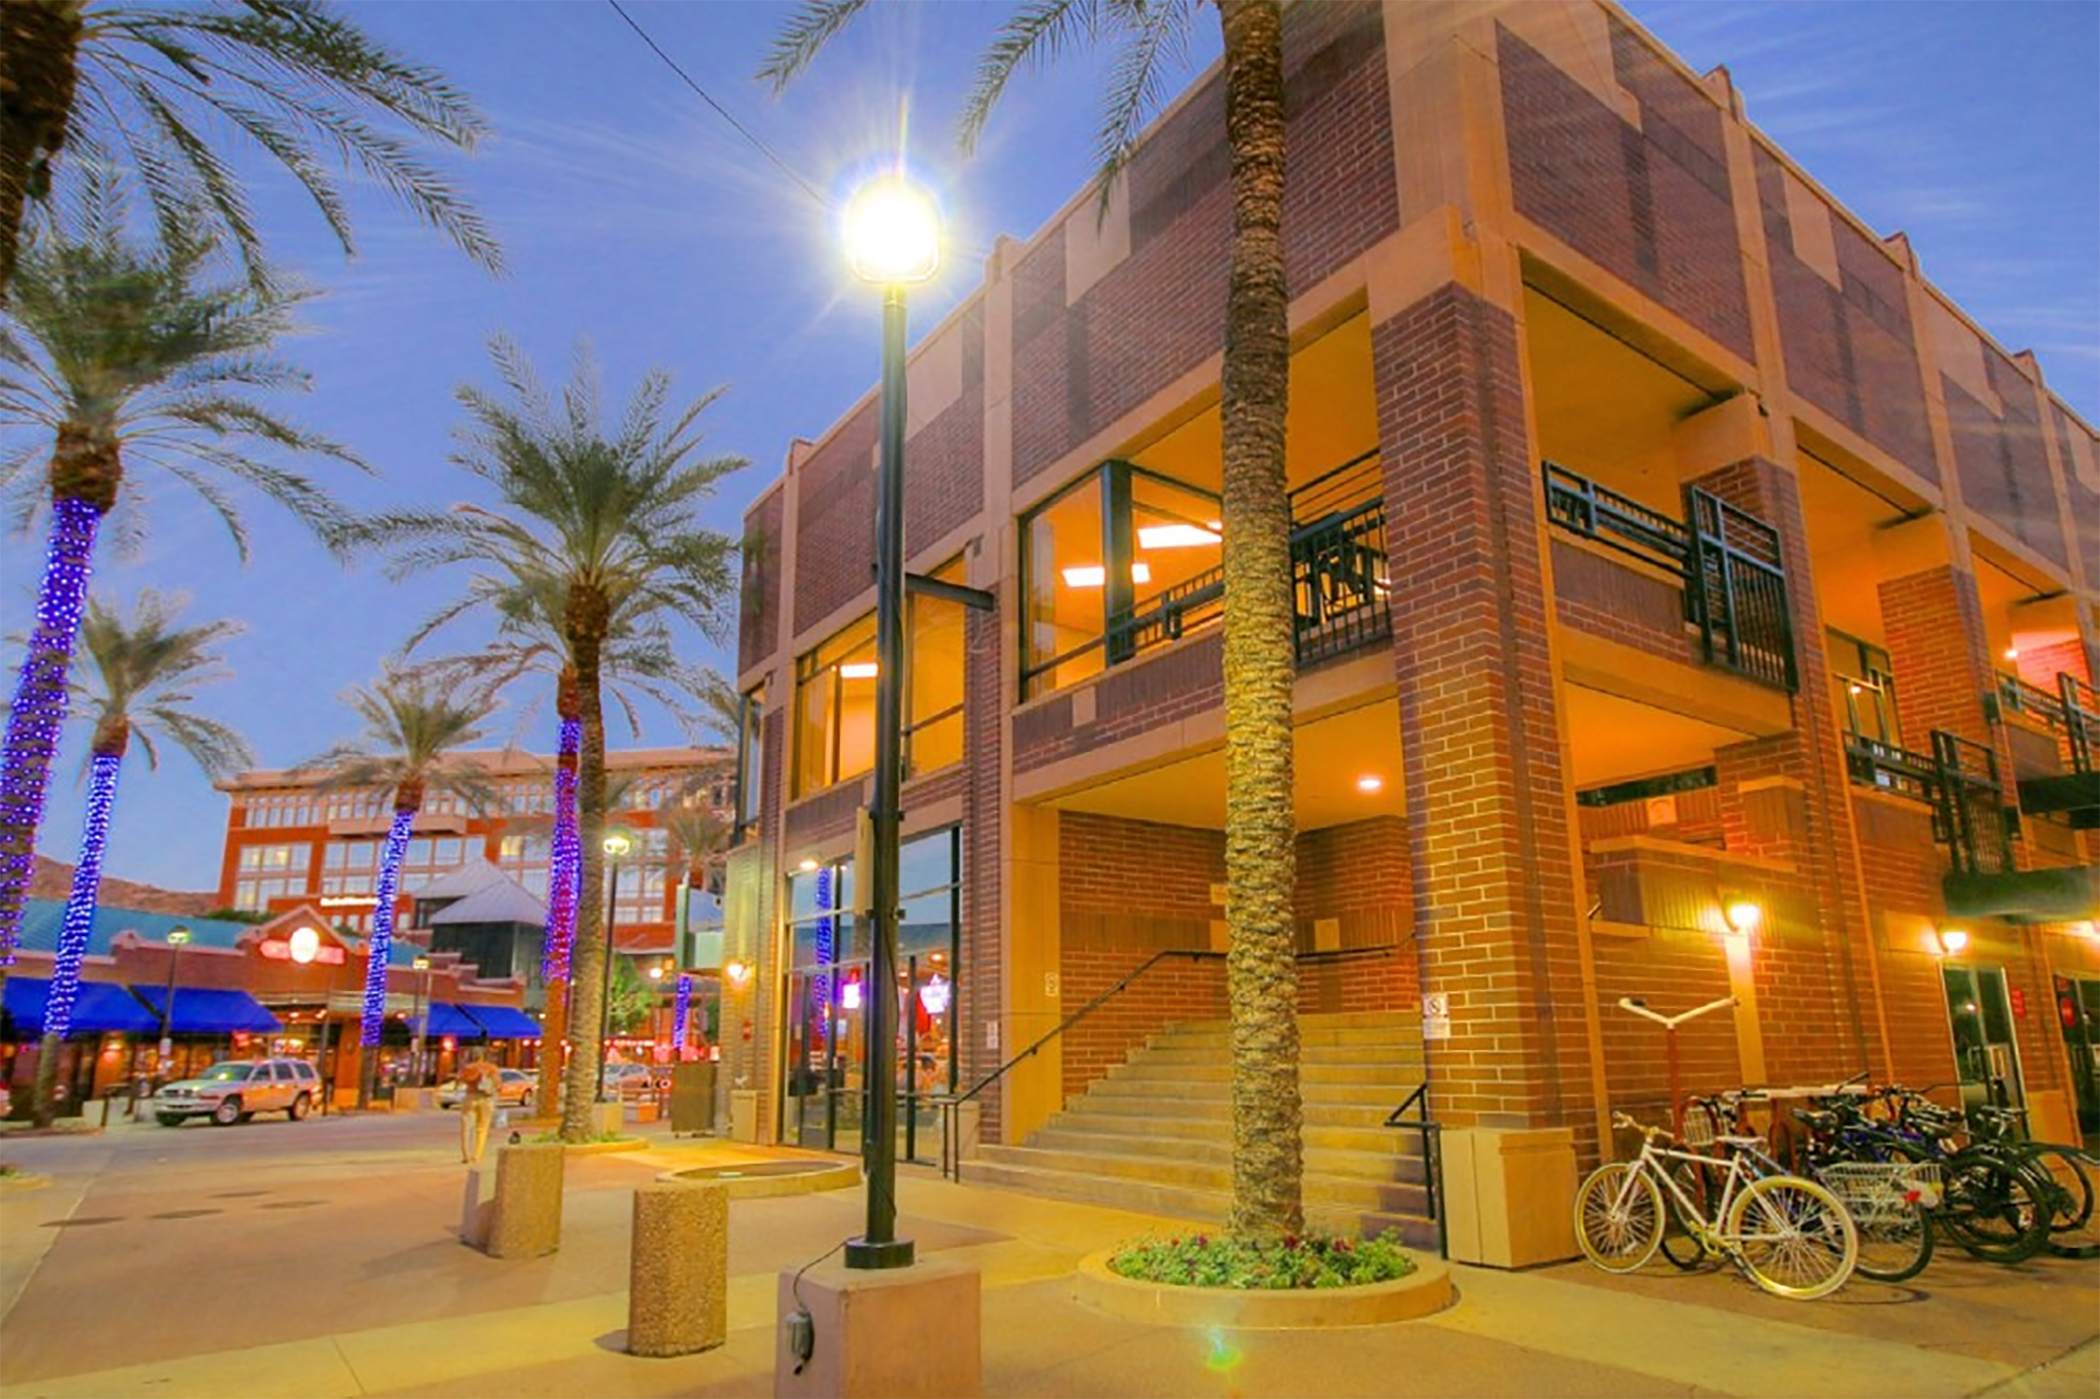 Centerpoint on Mill benefits from student foot traffic at nearby Arizona State University. (CoStar)